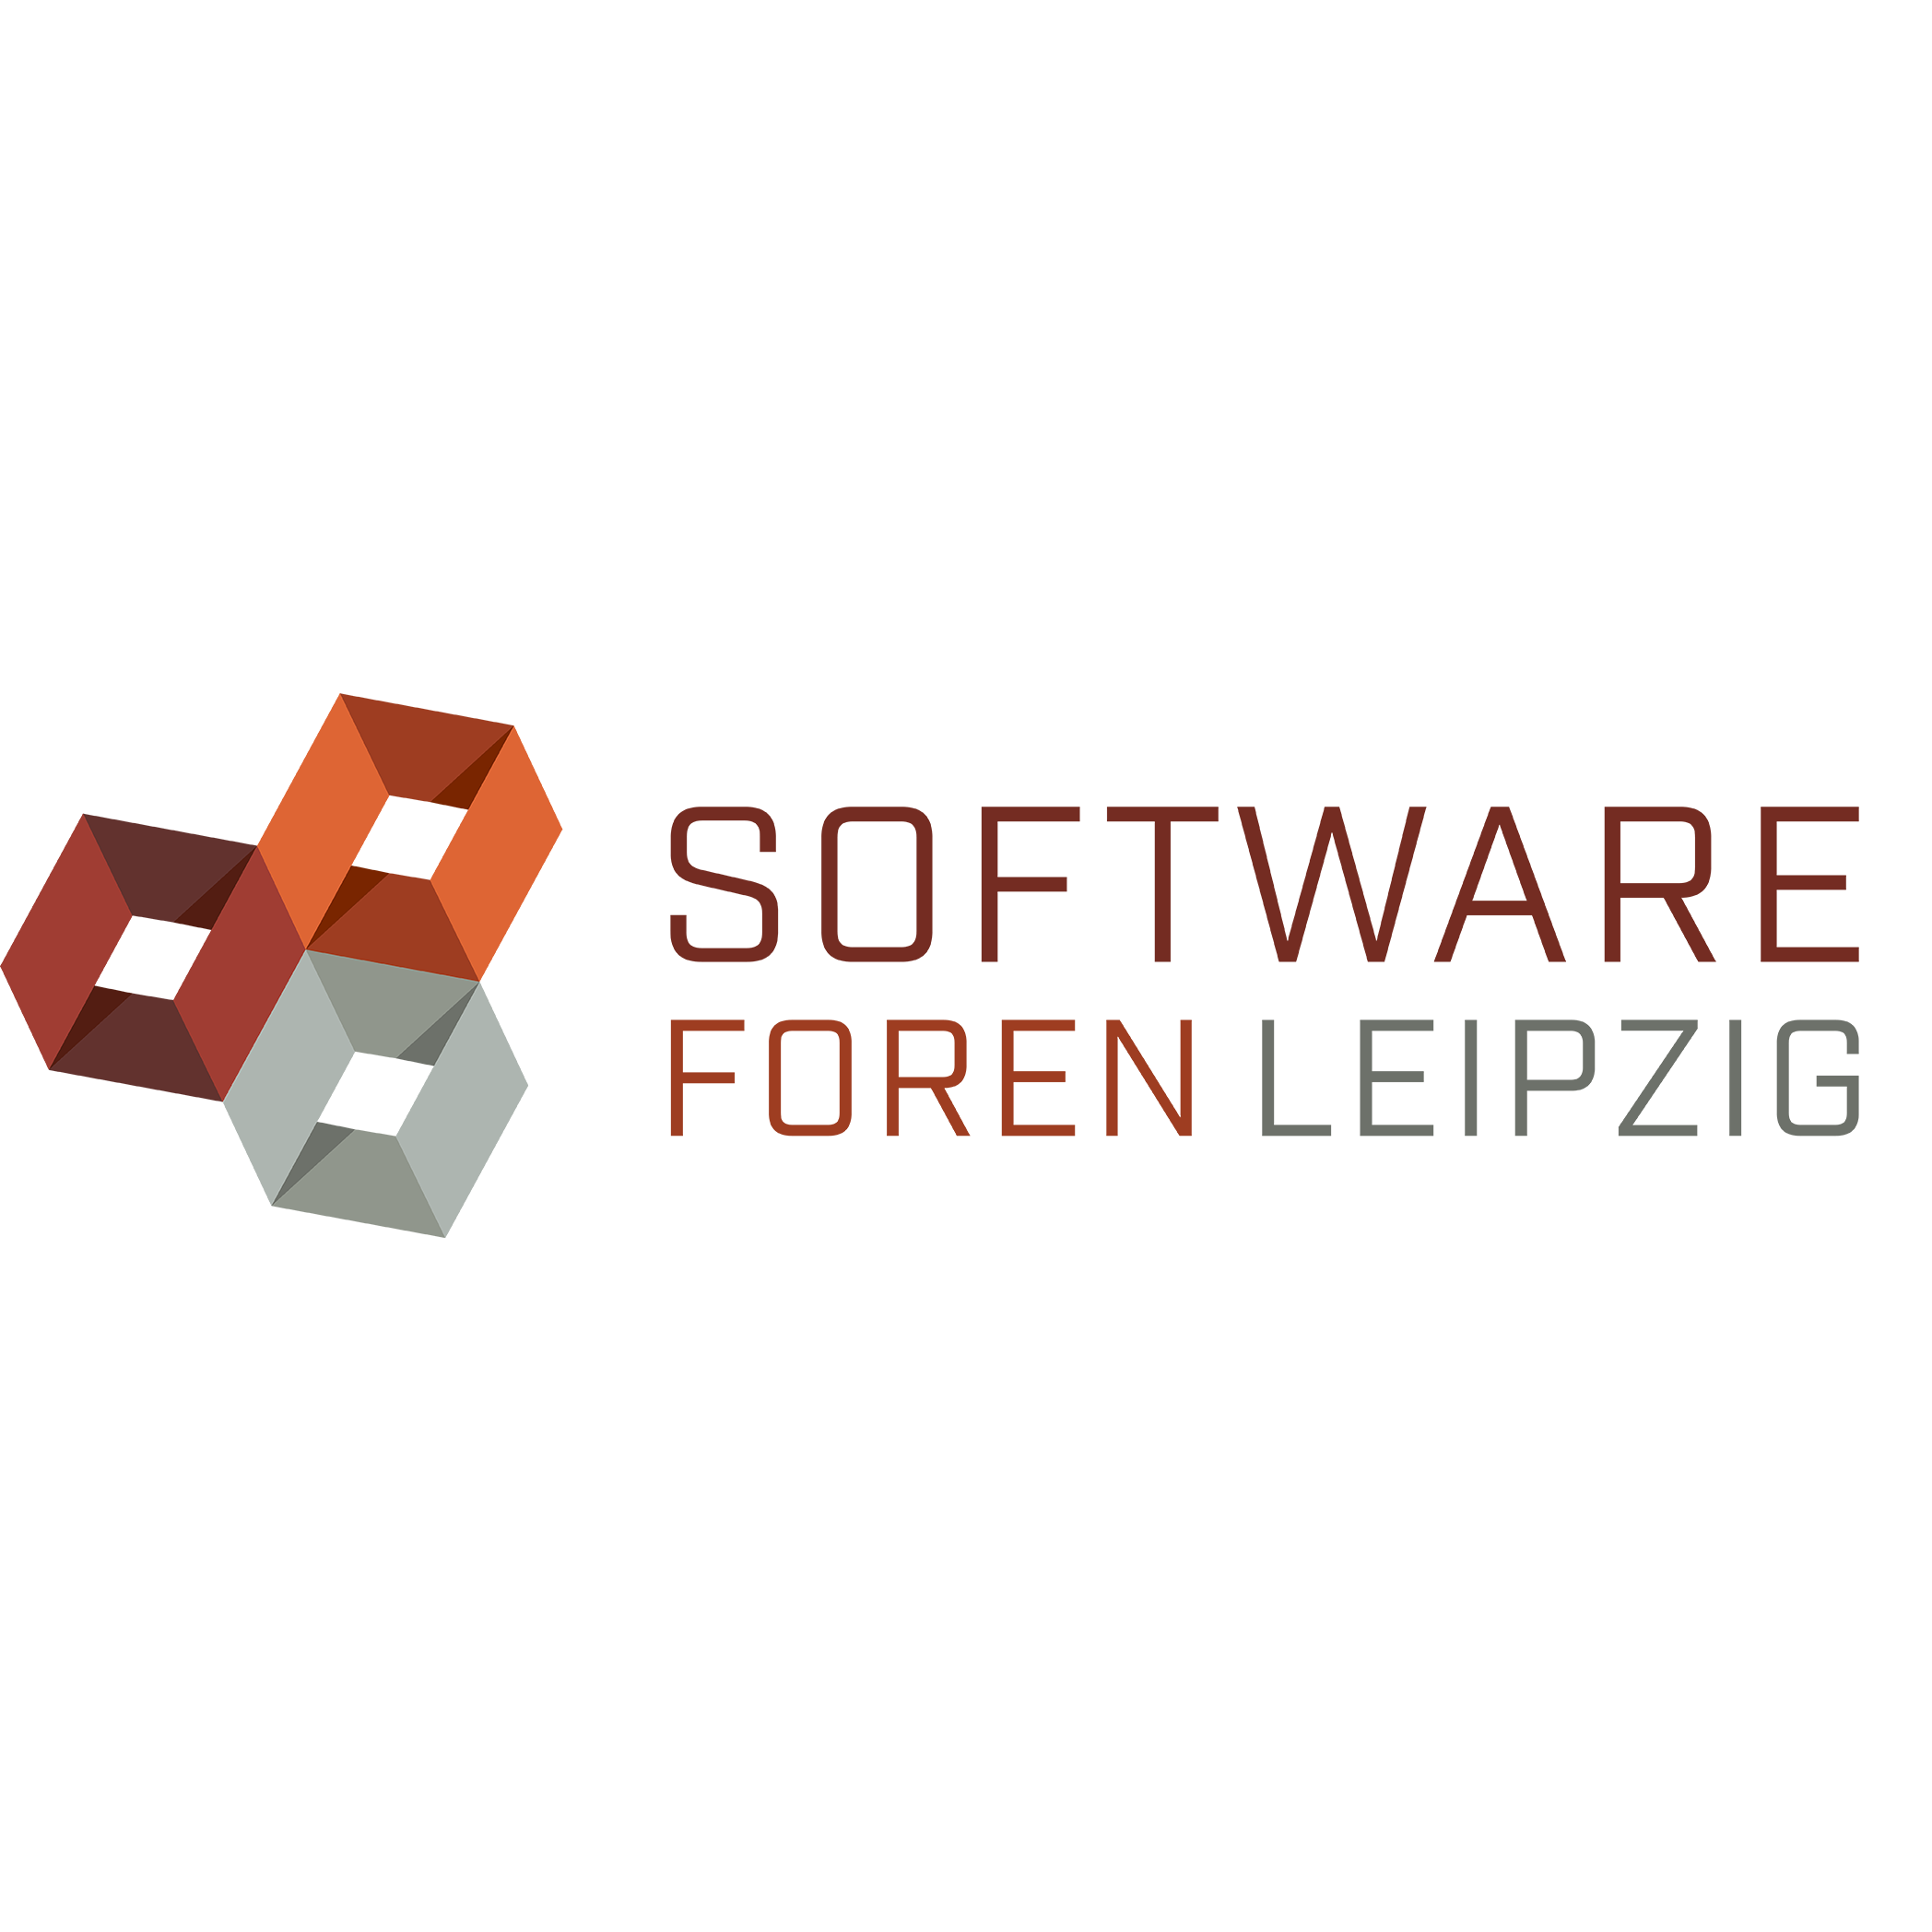 Partner: Softwareforen Leipzig